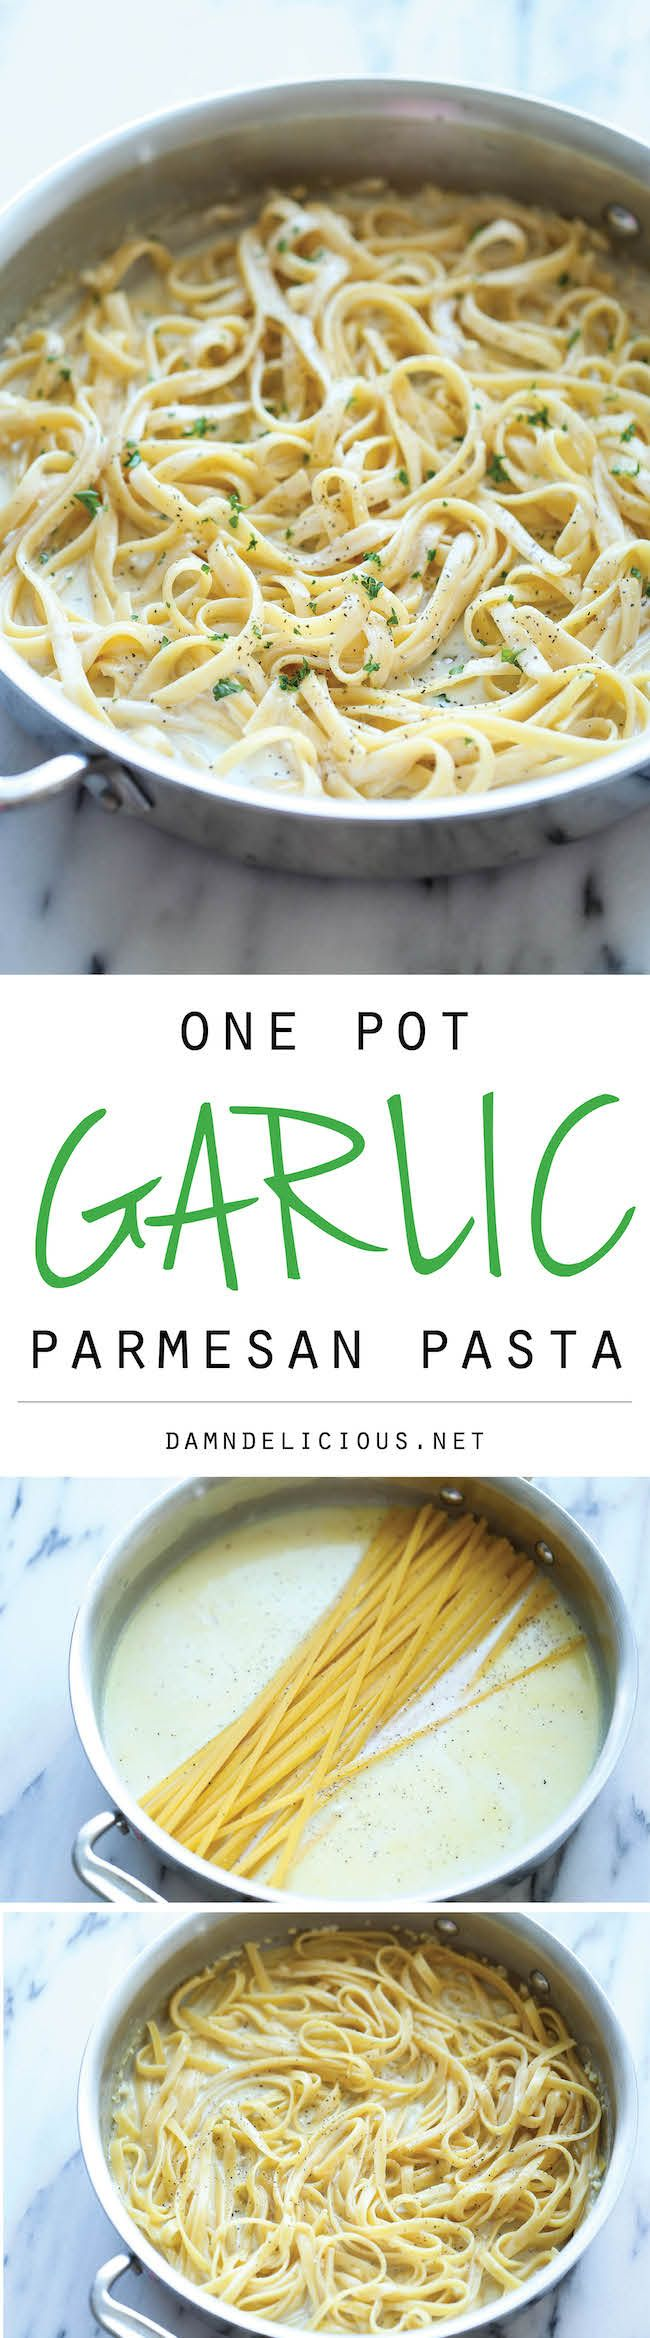 One Pot Garlic Parmesan Pasta - The easiest and creamiest pasta made in a single…